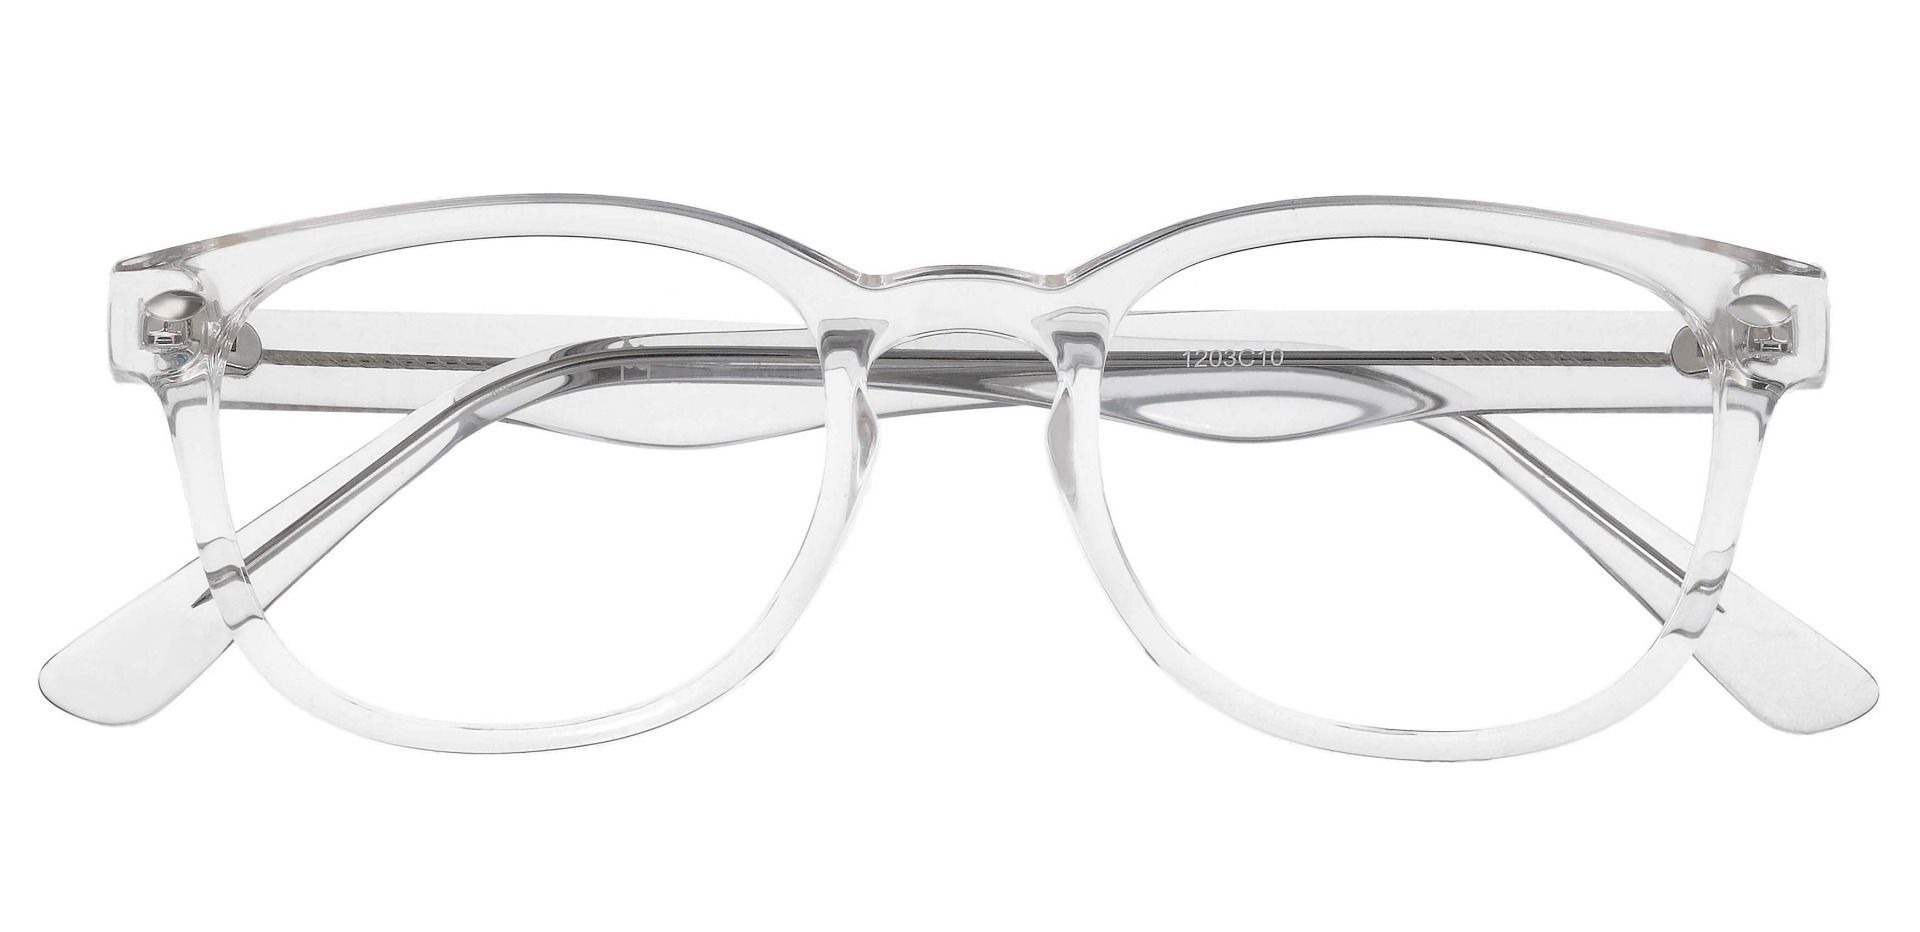 Swirl Classic Square Blue Light Blocking Glasses - Clear